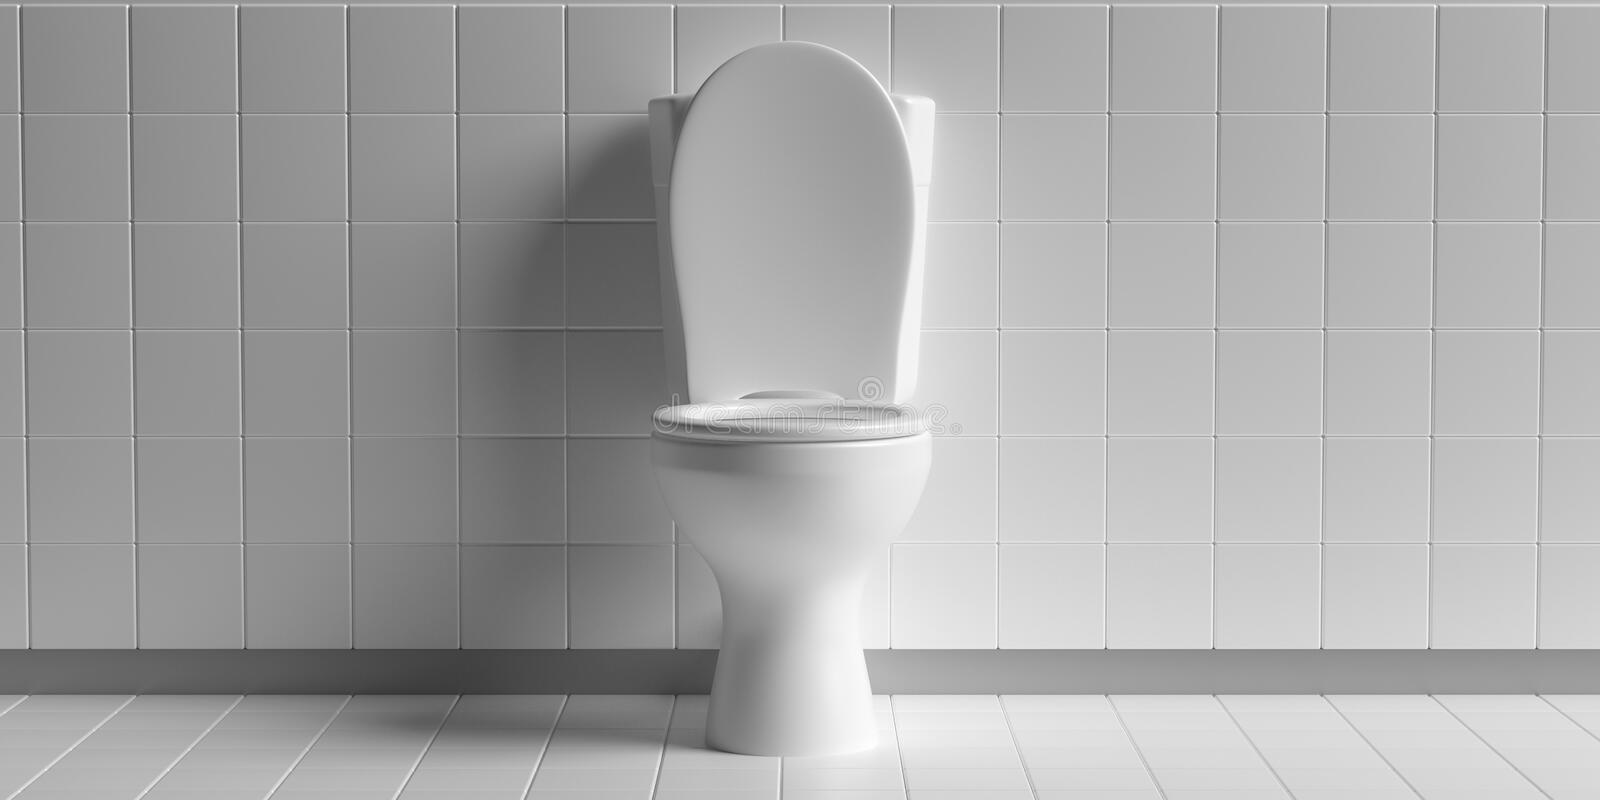 Toilet bowl on white background, copy space. 3d illustration. WC toilet bowl white color on white tiles floor and wall background, copy space. 3d illustration royalty free illustration